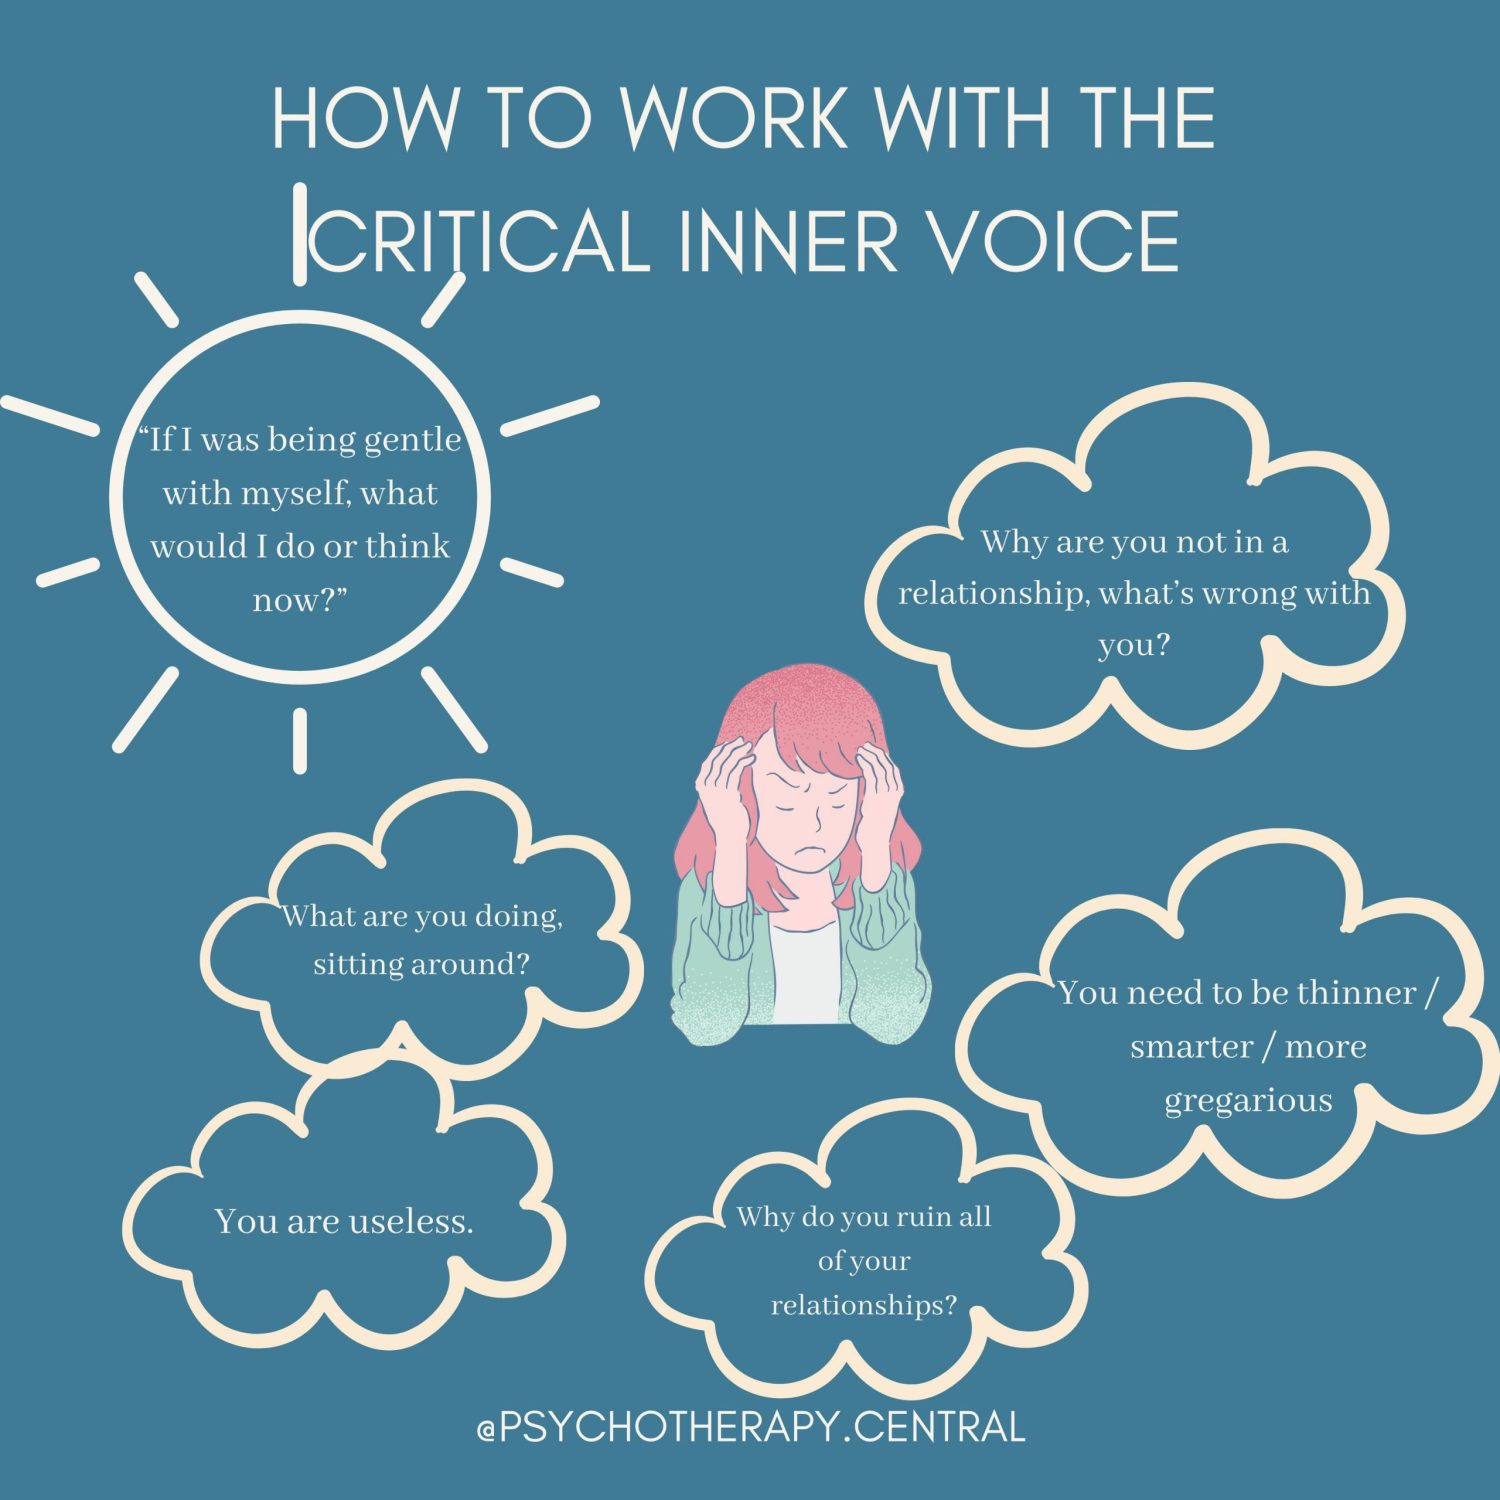 HOW-TO-WORK-WITH-THE-CRITICAL-INNER-VOICE